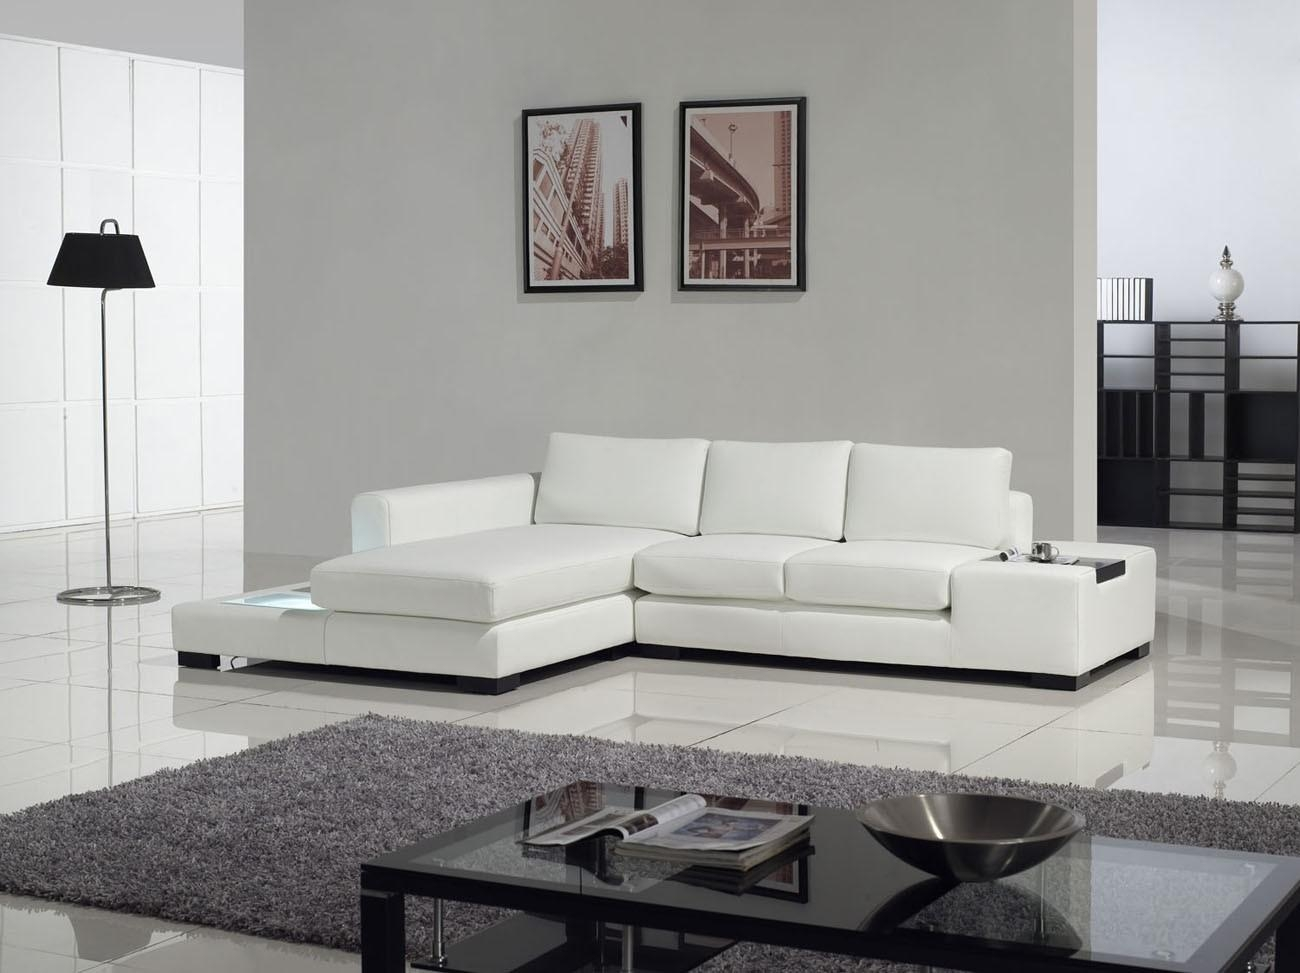 Sofa Chairs Intended For White Modern Sofas (View 3 of 20)